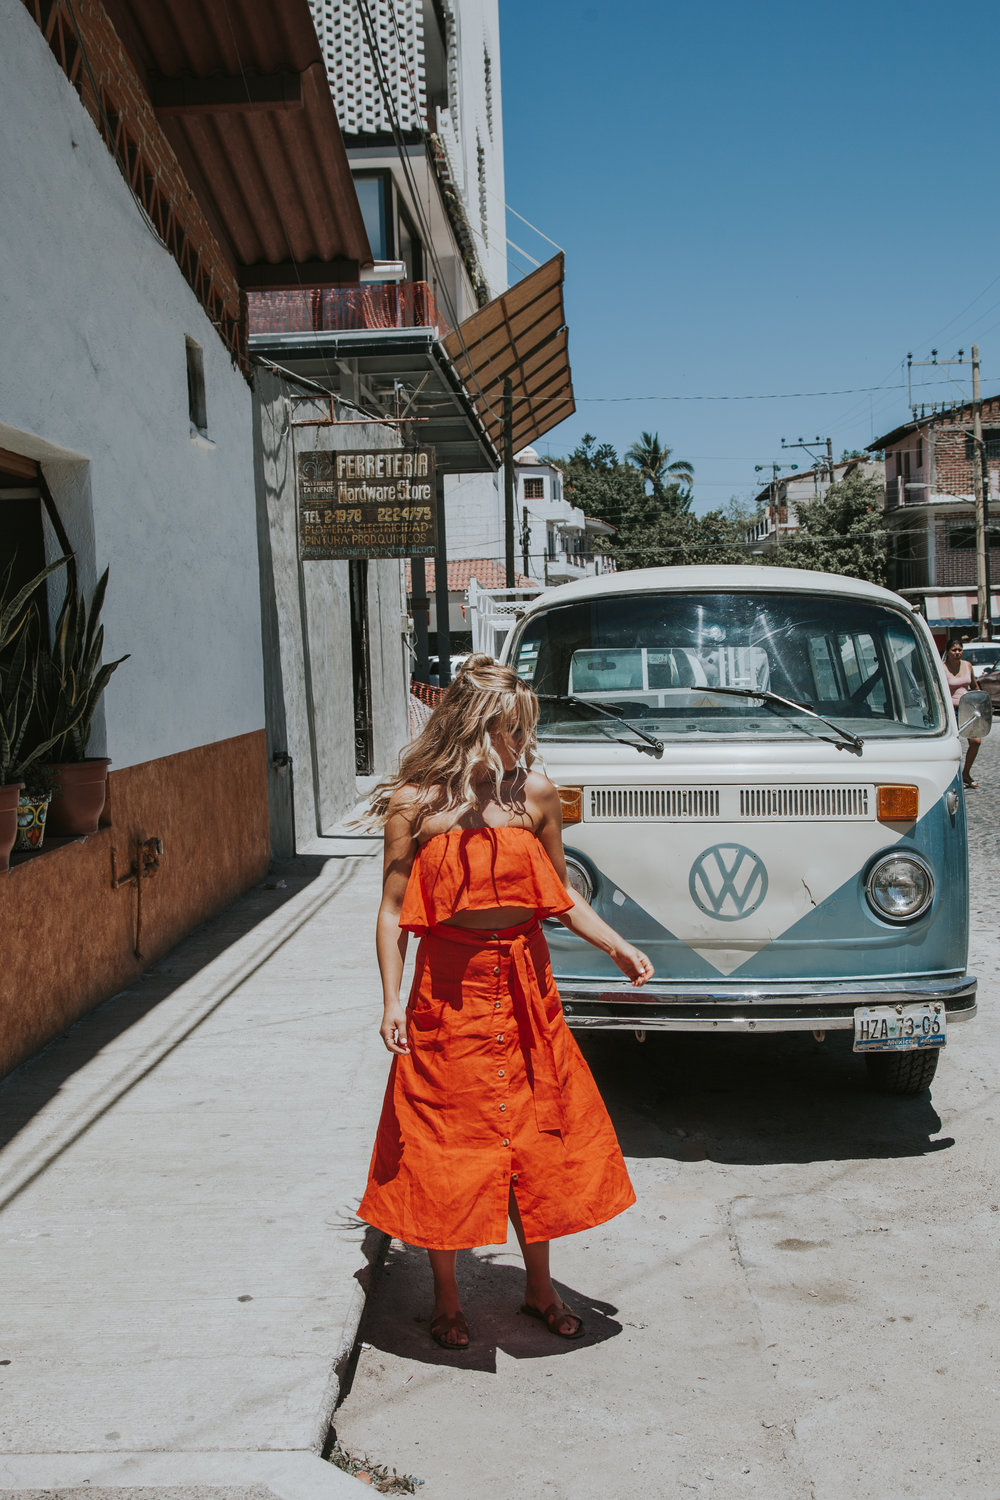 photos by  Paige Owen  Faithfull The Brand Top & Skirt, Hermes Sandals| Faithfull The Brand Top, Levi's Shorts, Chloe Backpack| Reformation Dress| For Love & Lemons Polka Dot Dress & Lemon Dress, both via  Finders Keep Hers Boutique |